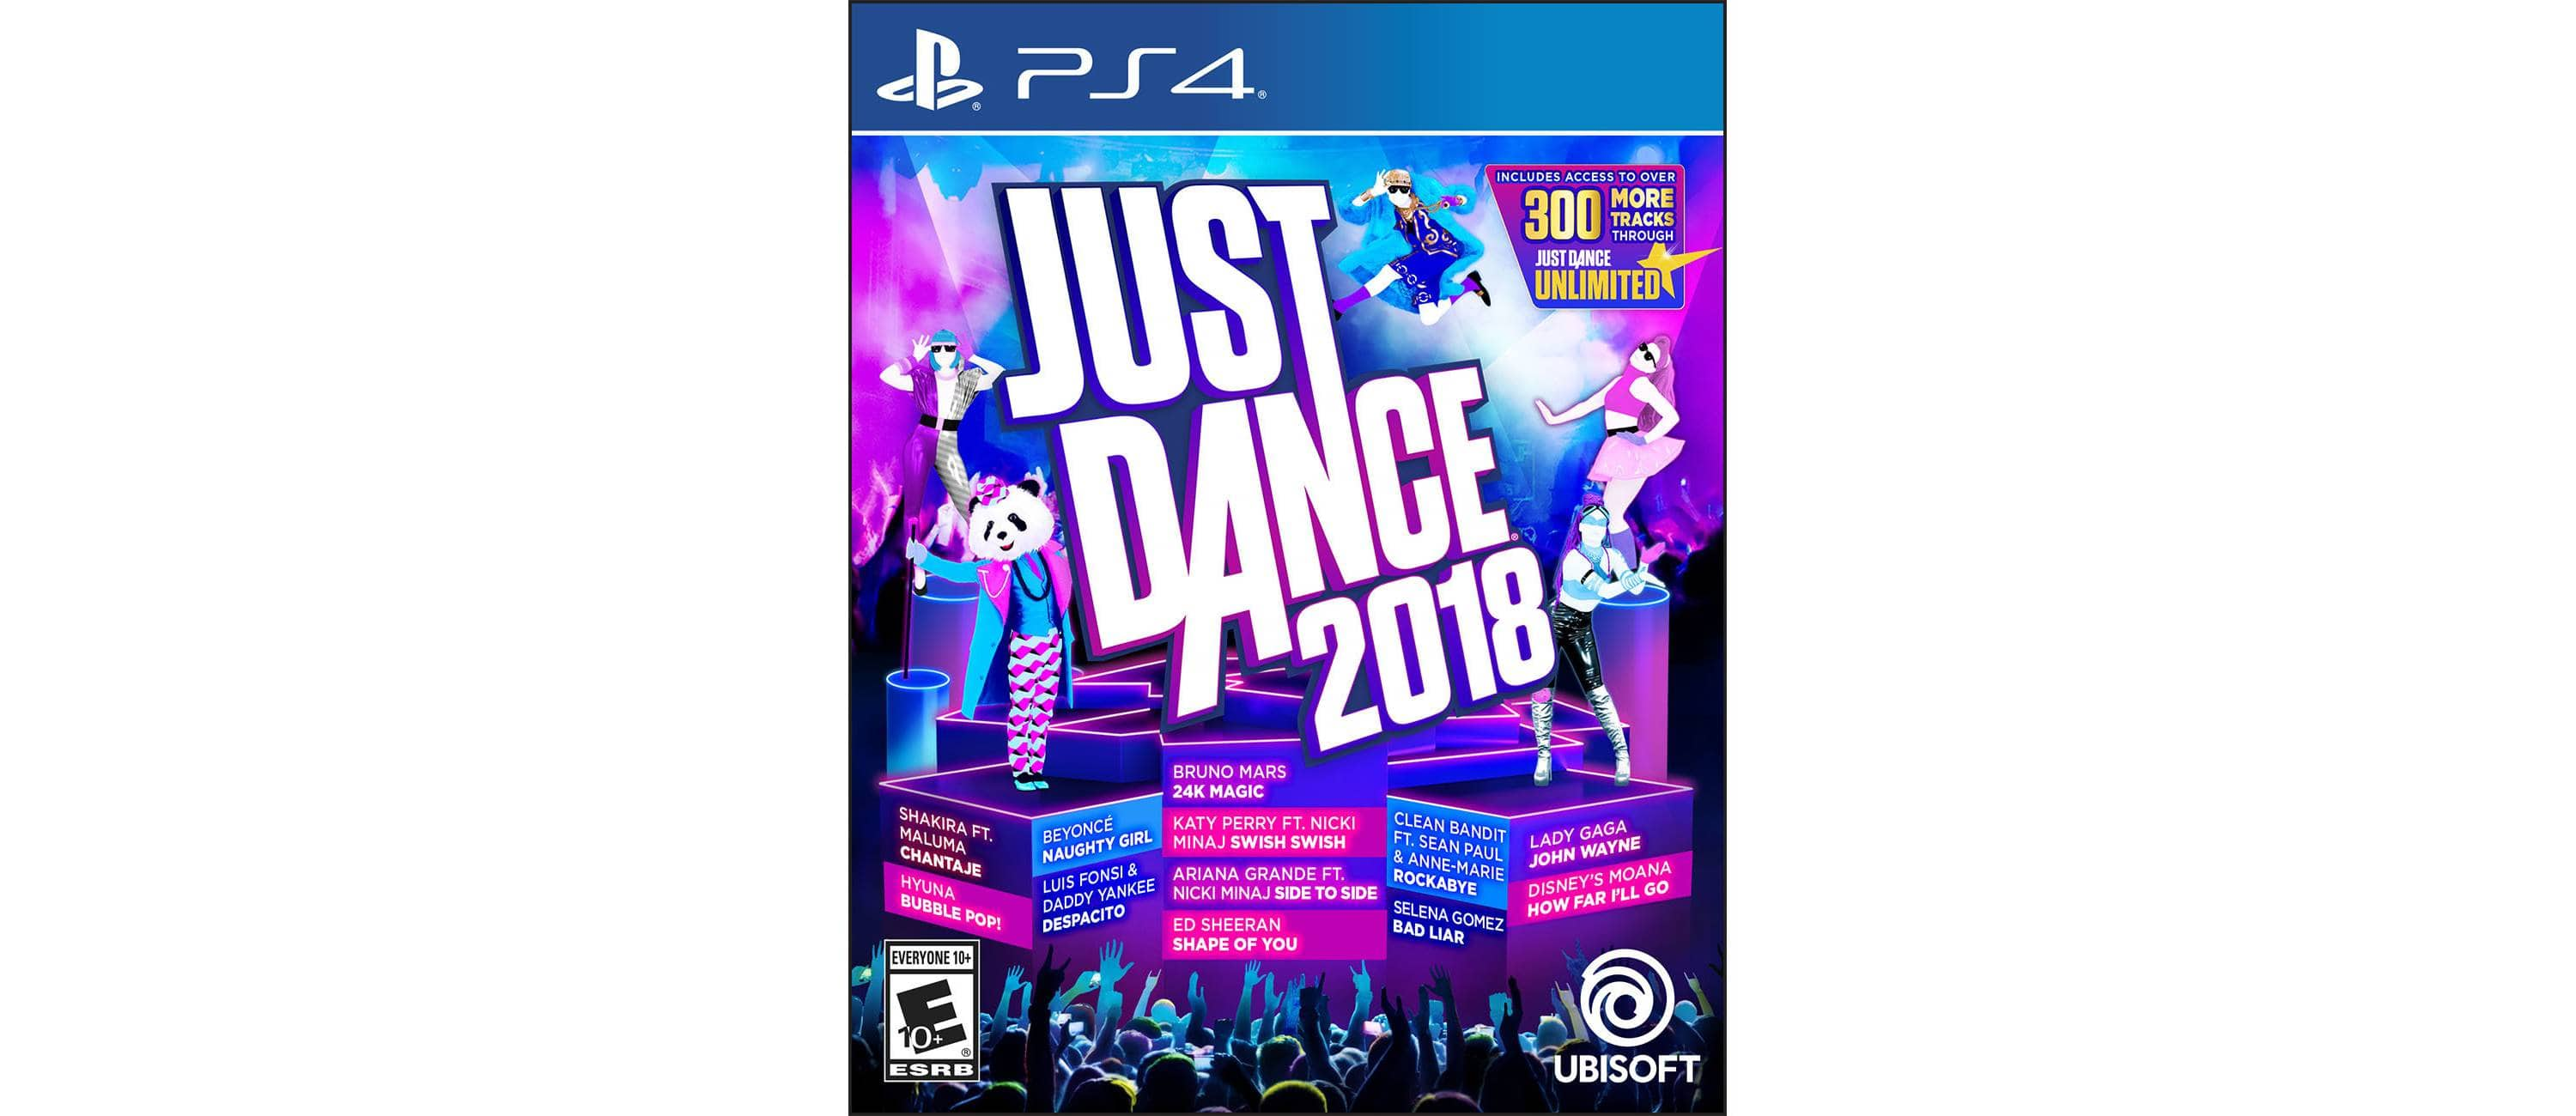 Just Dance 2018 (NS, XB1, PS4) for $35 via BestBuy PM